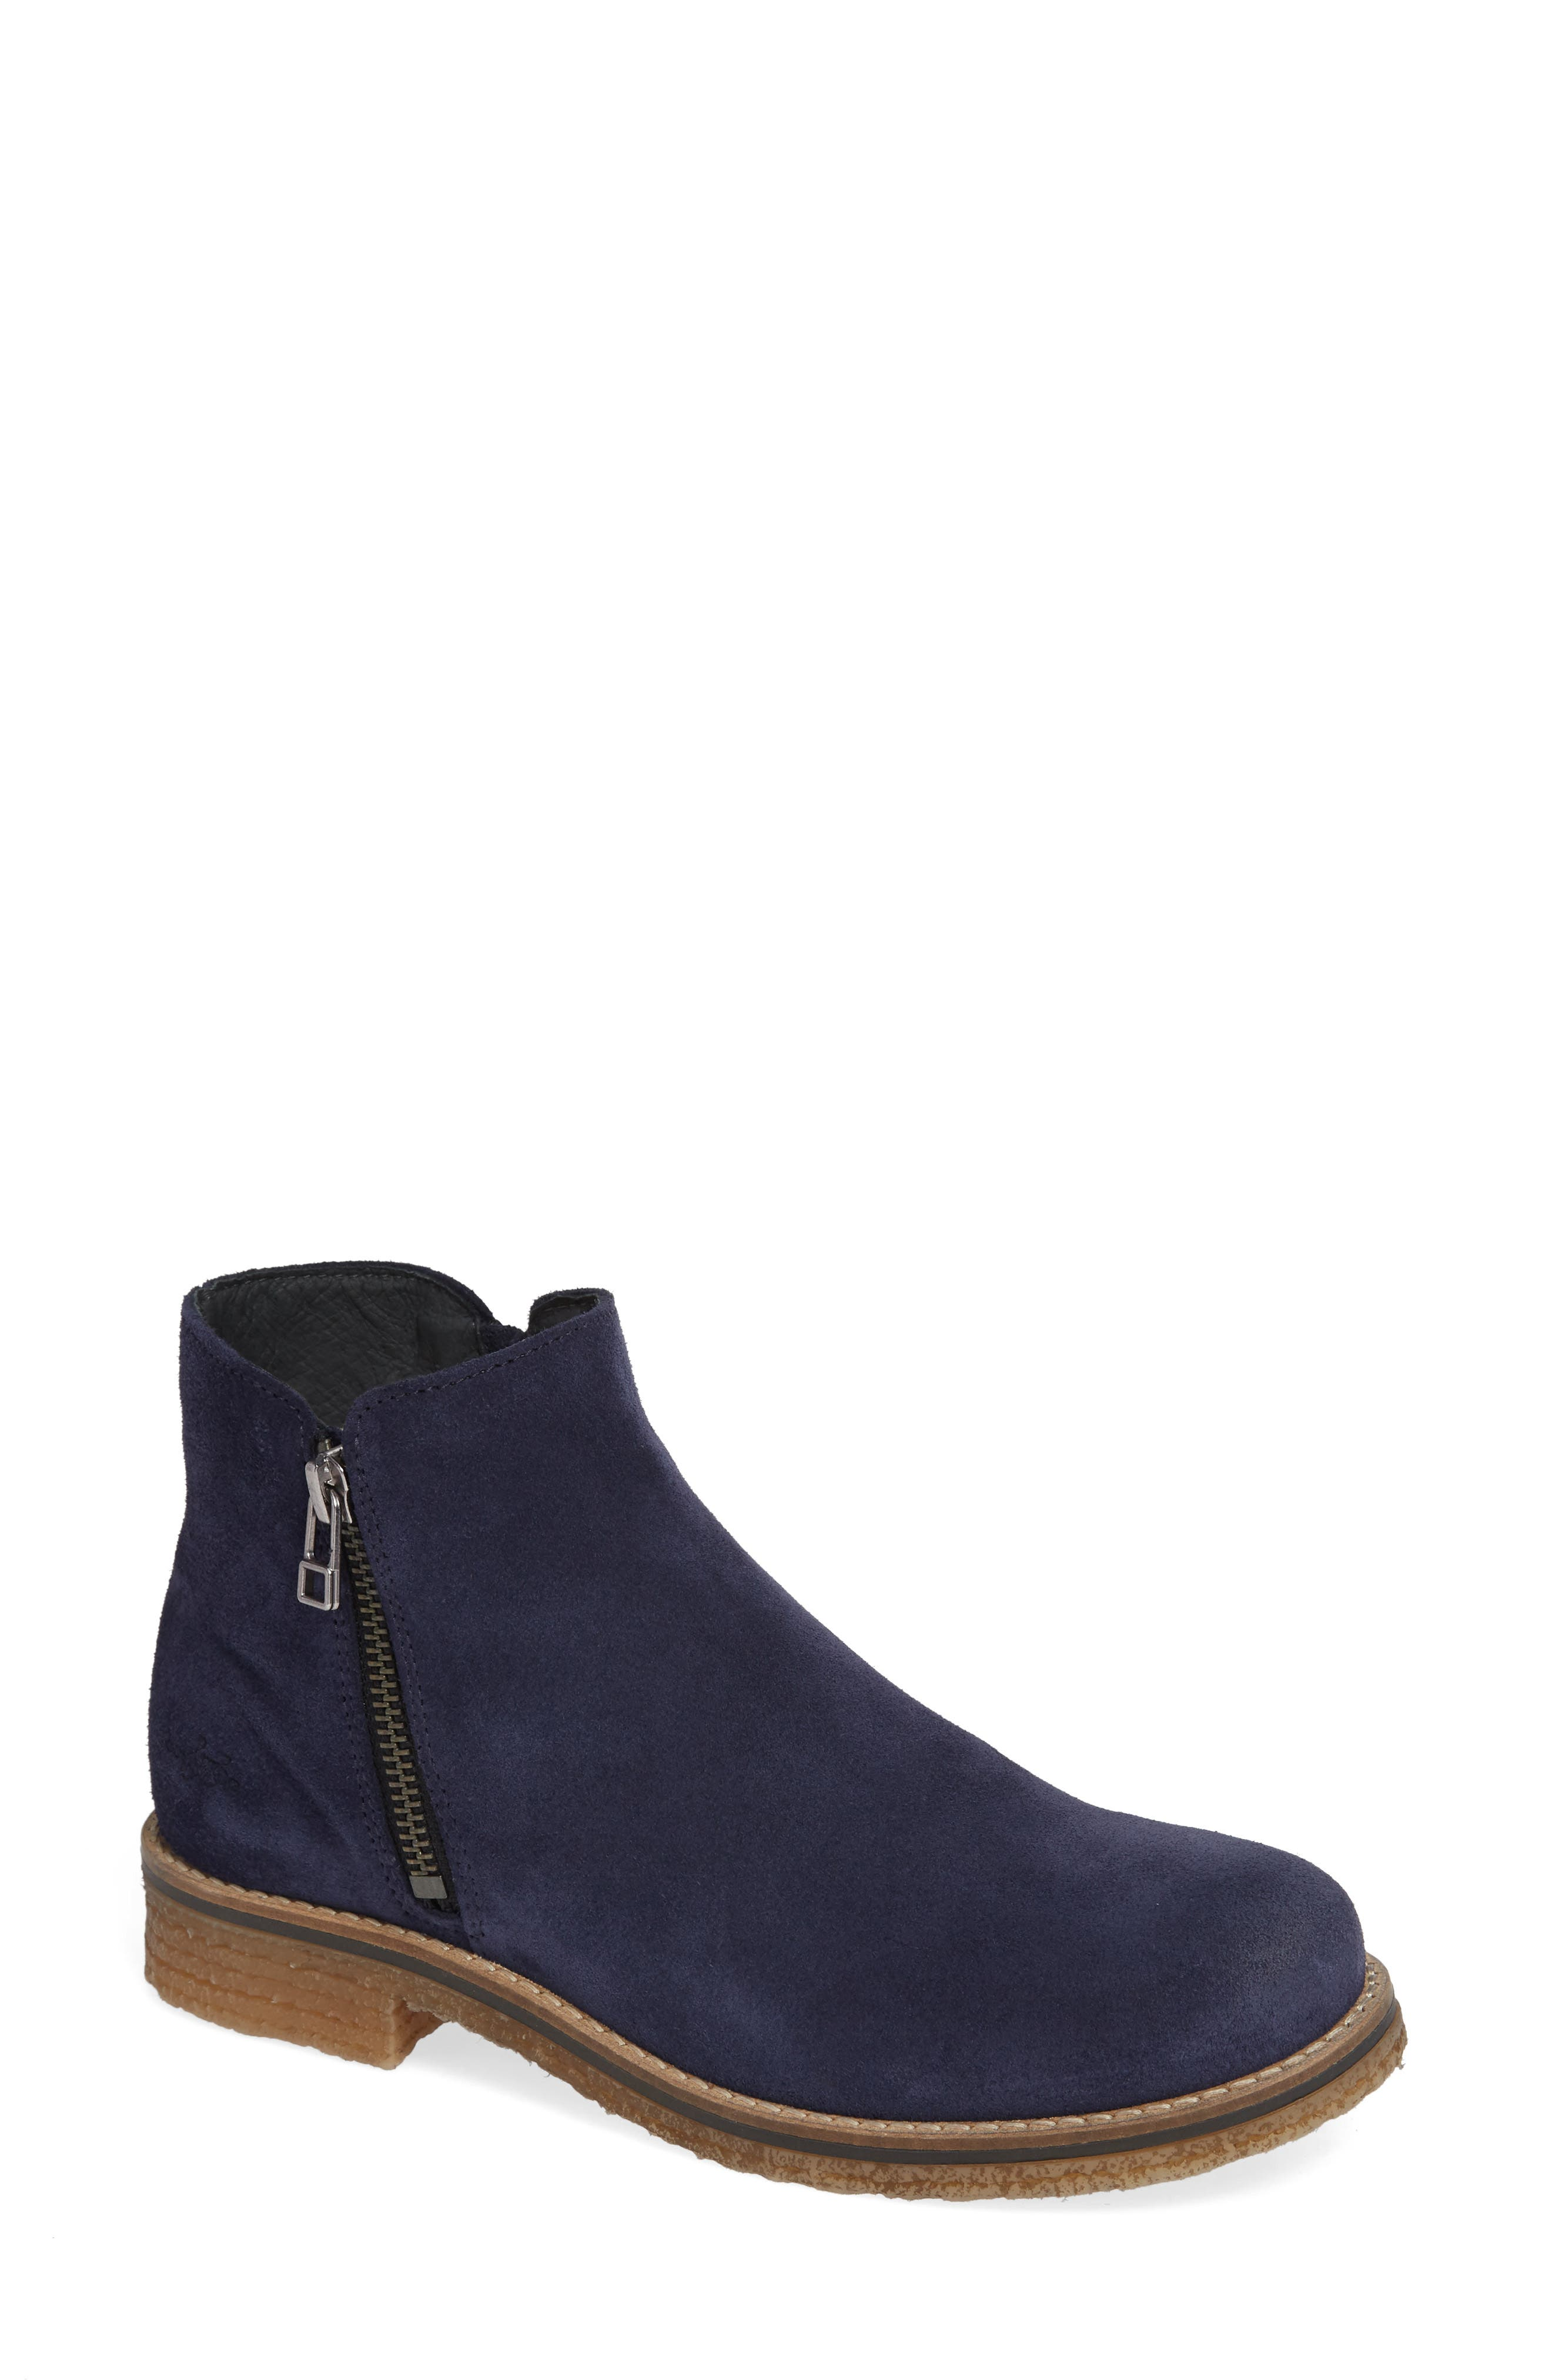 Bos. & Co. Buss Ankle Boot - Blue